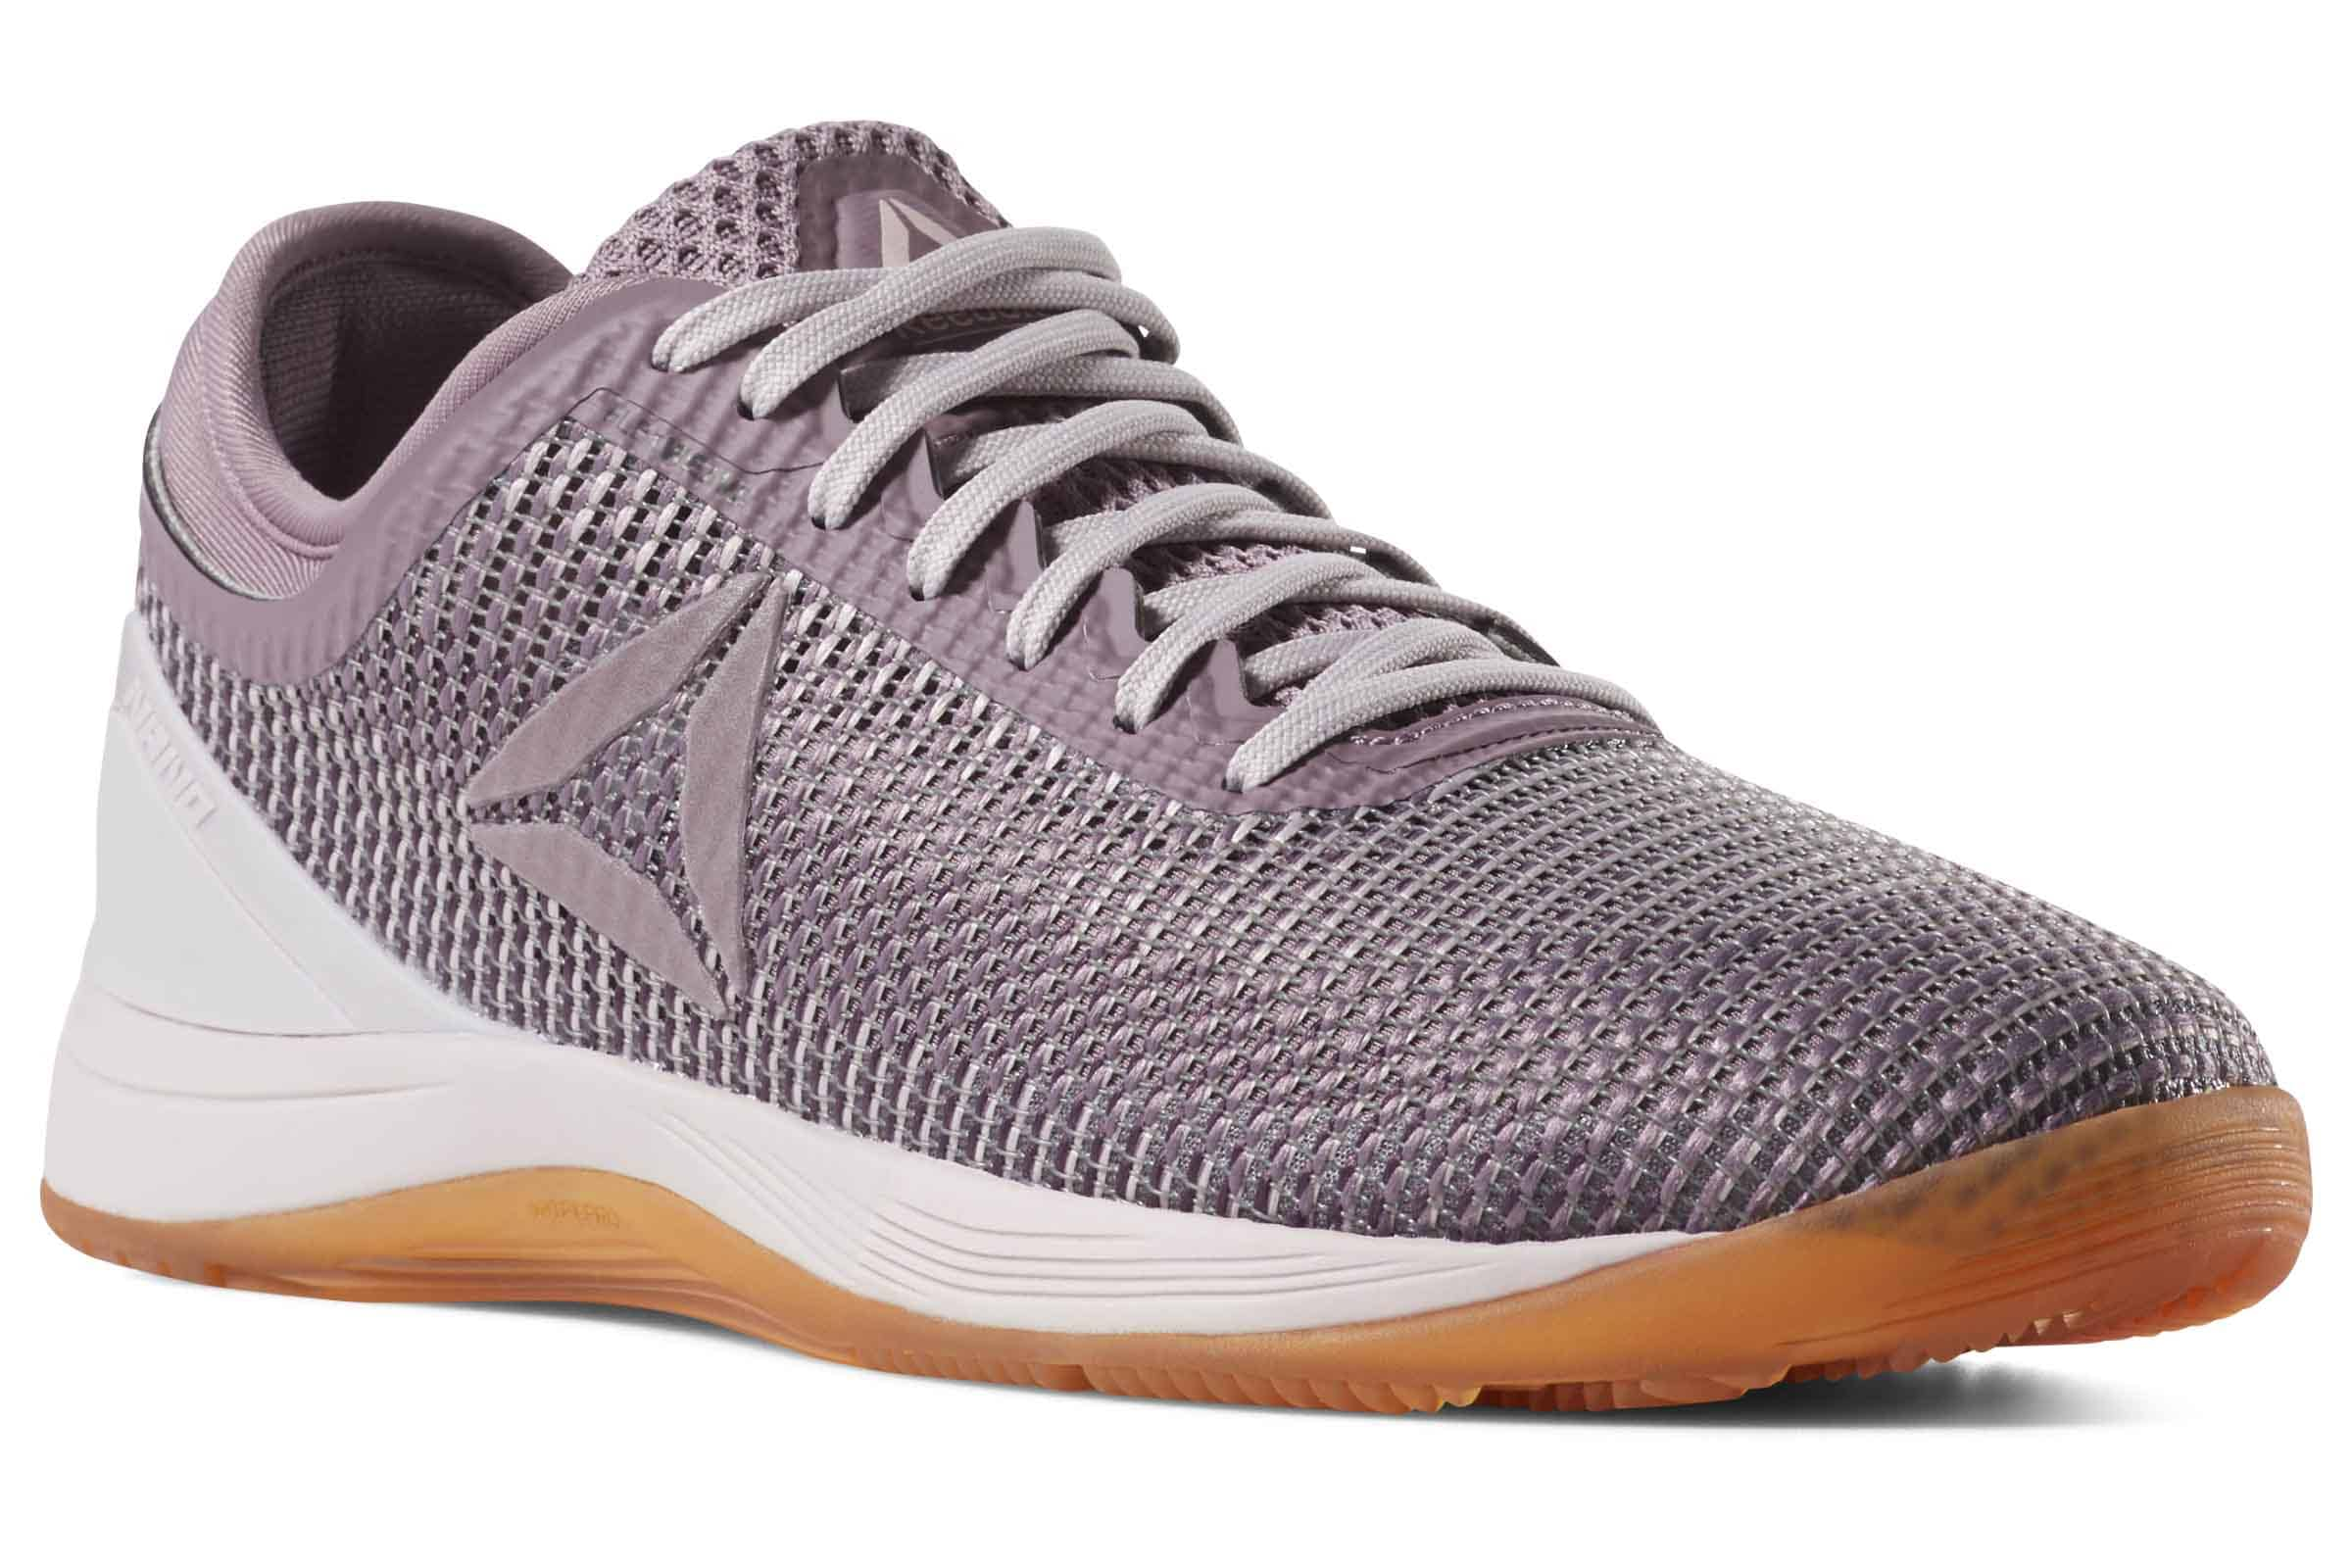 Best Gym Shoes for Women: What Is Right for Your Workout?